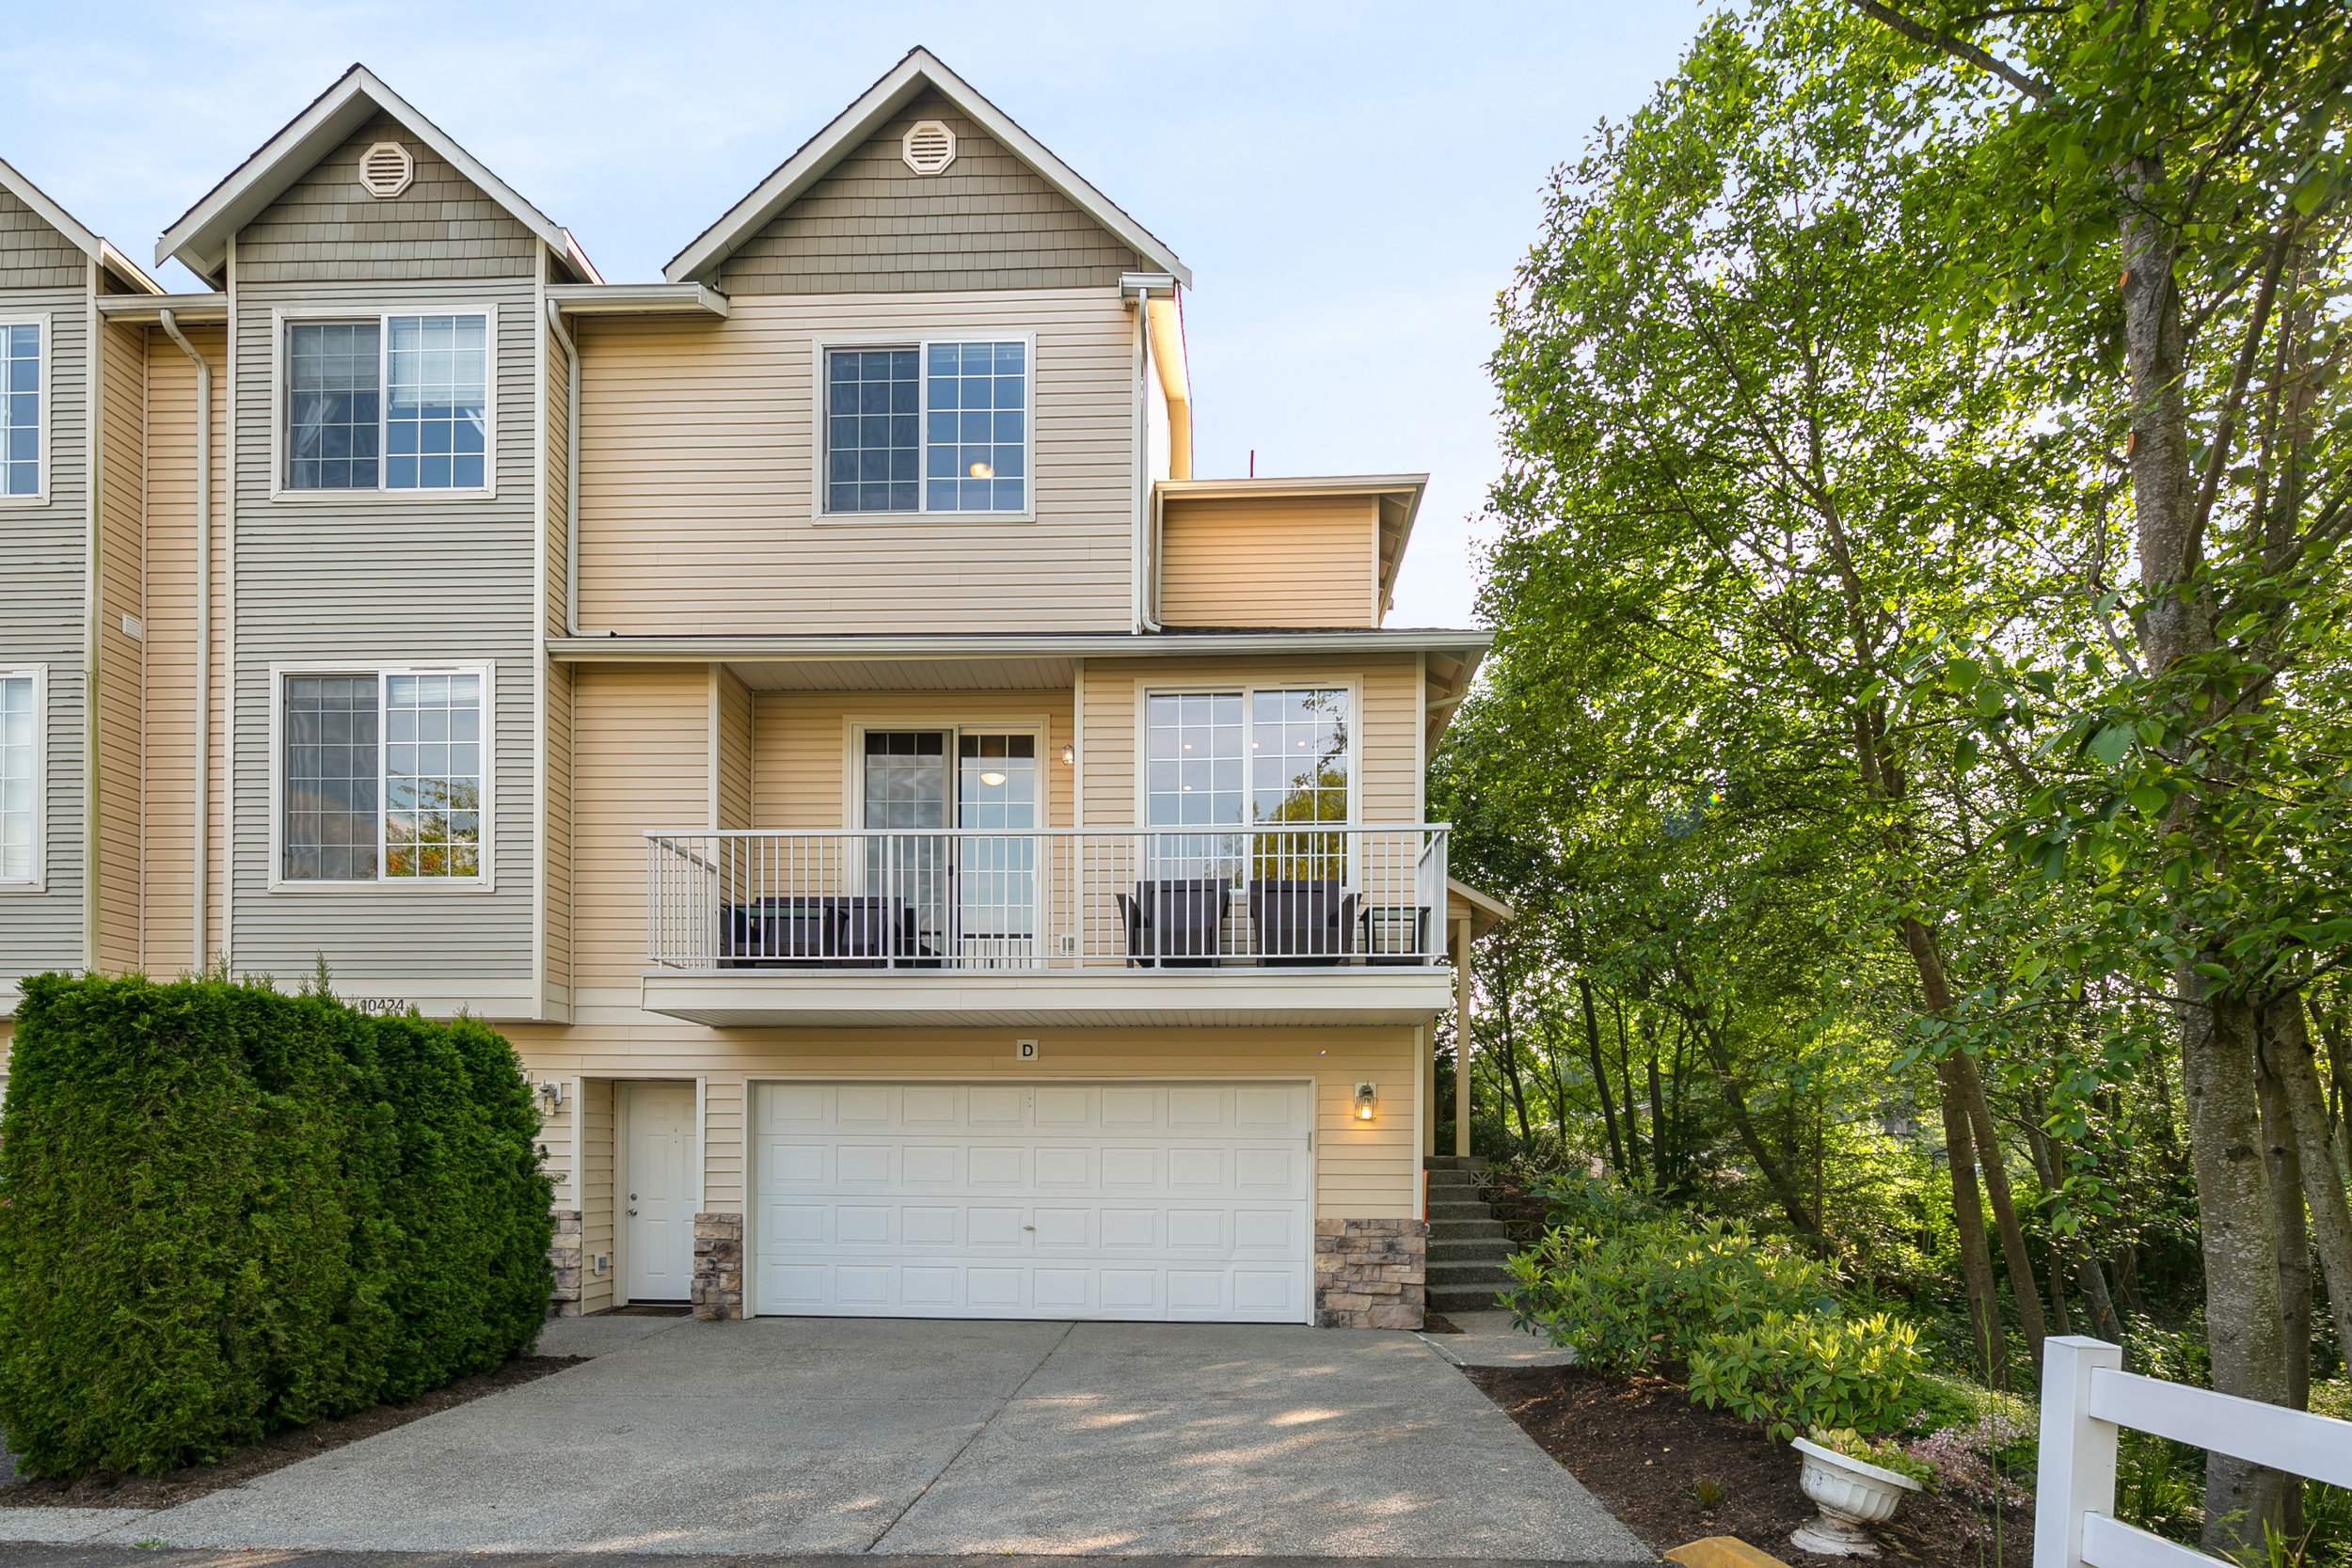 10424 HOLLY DRIVE - EVERETT, WA // SOLD